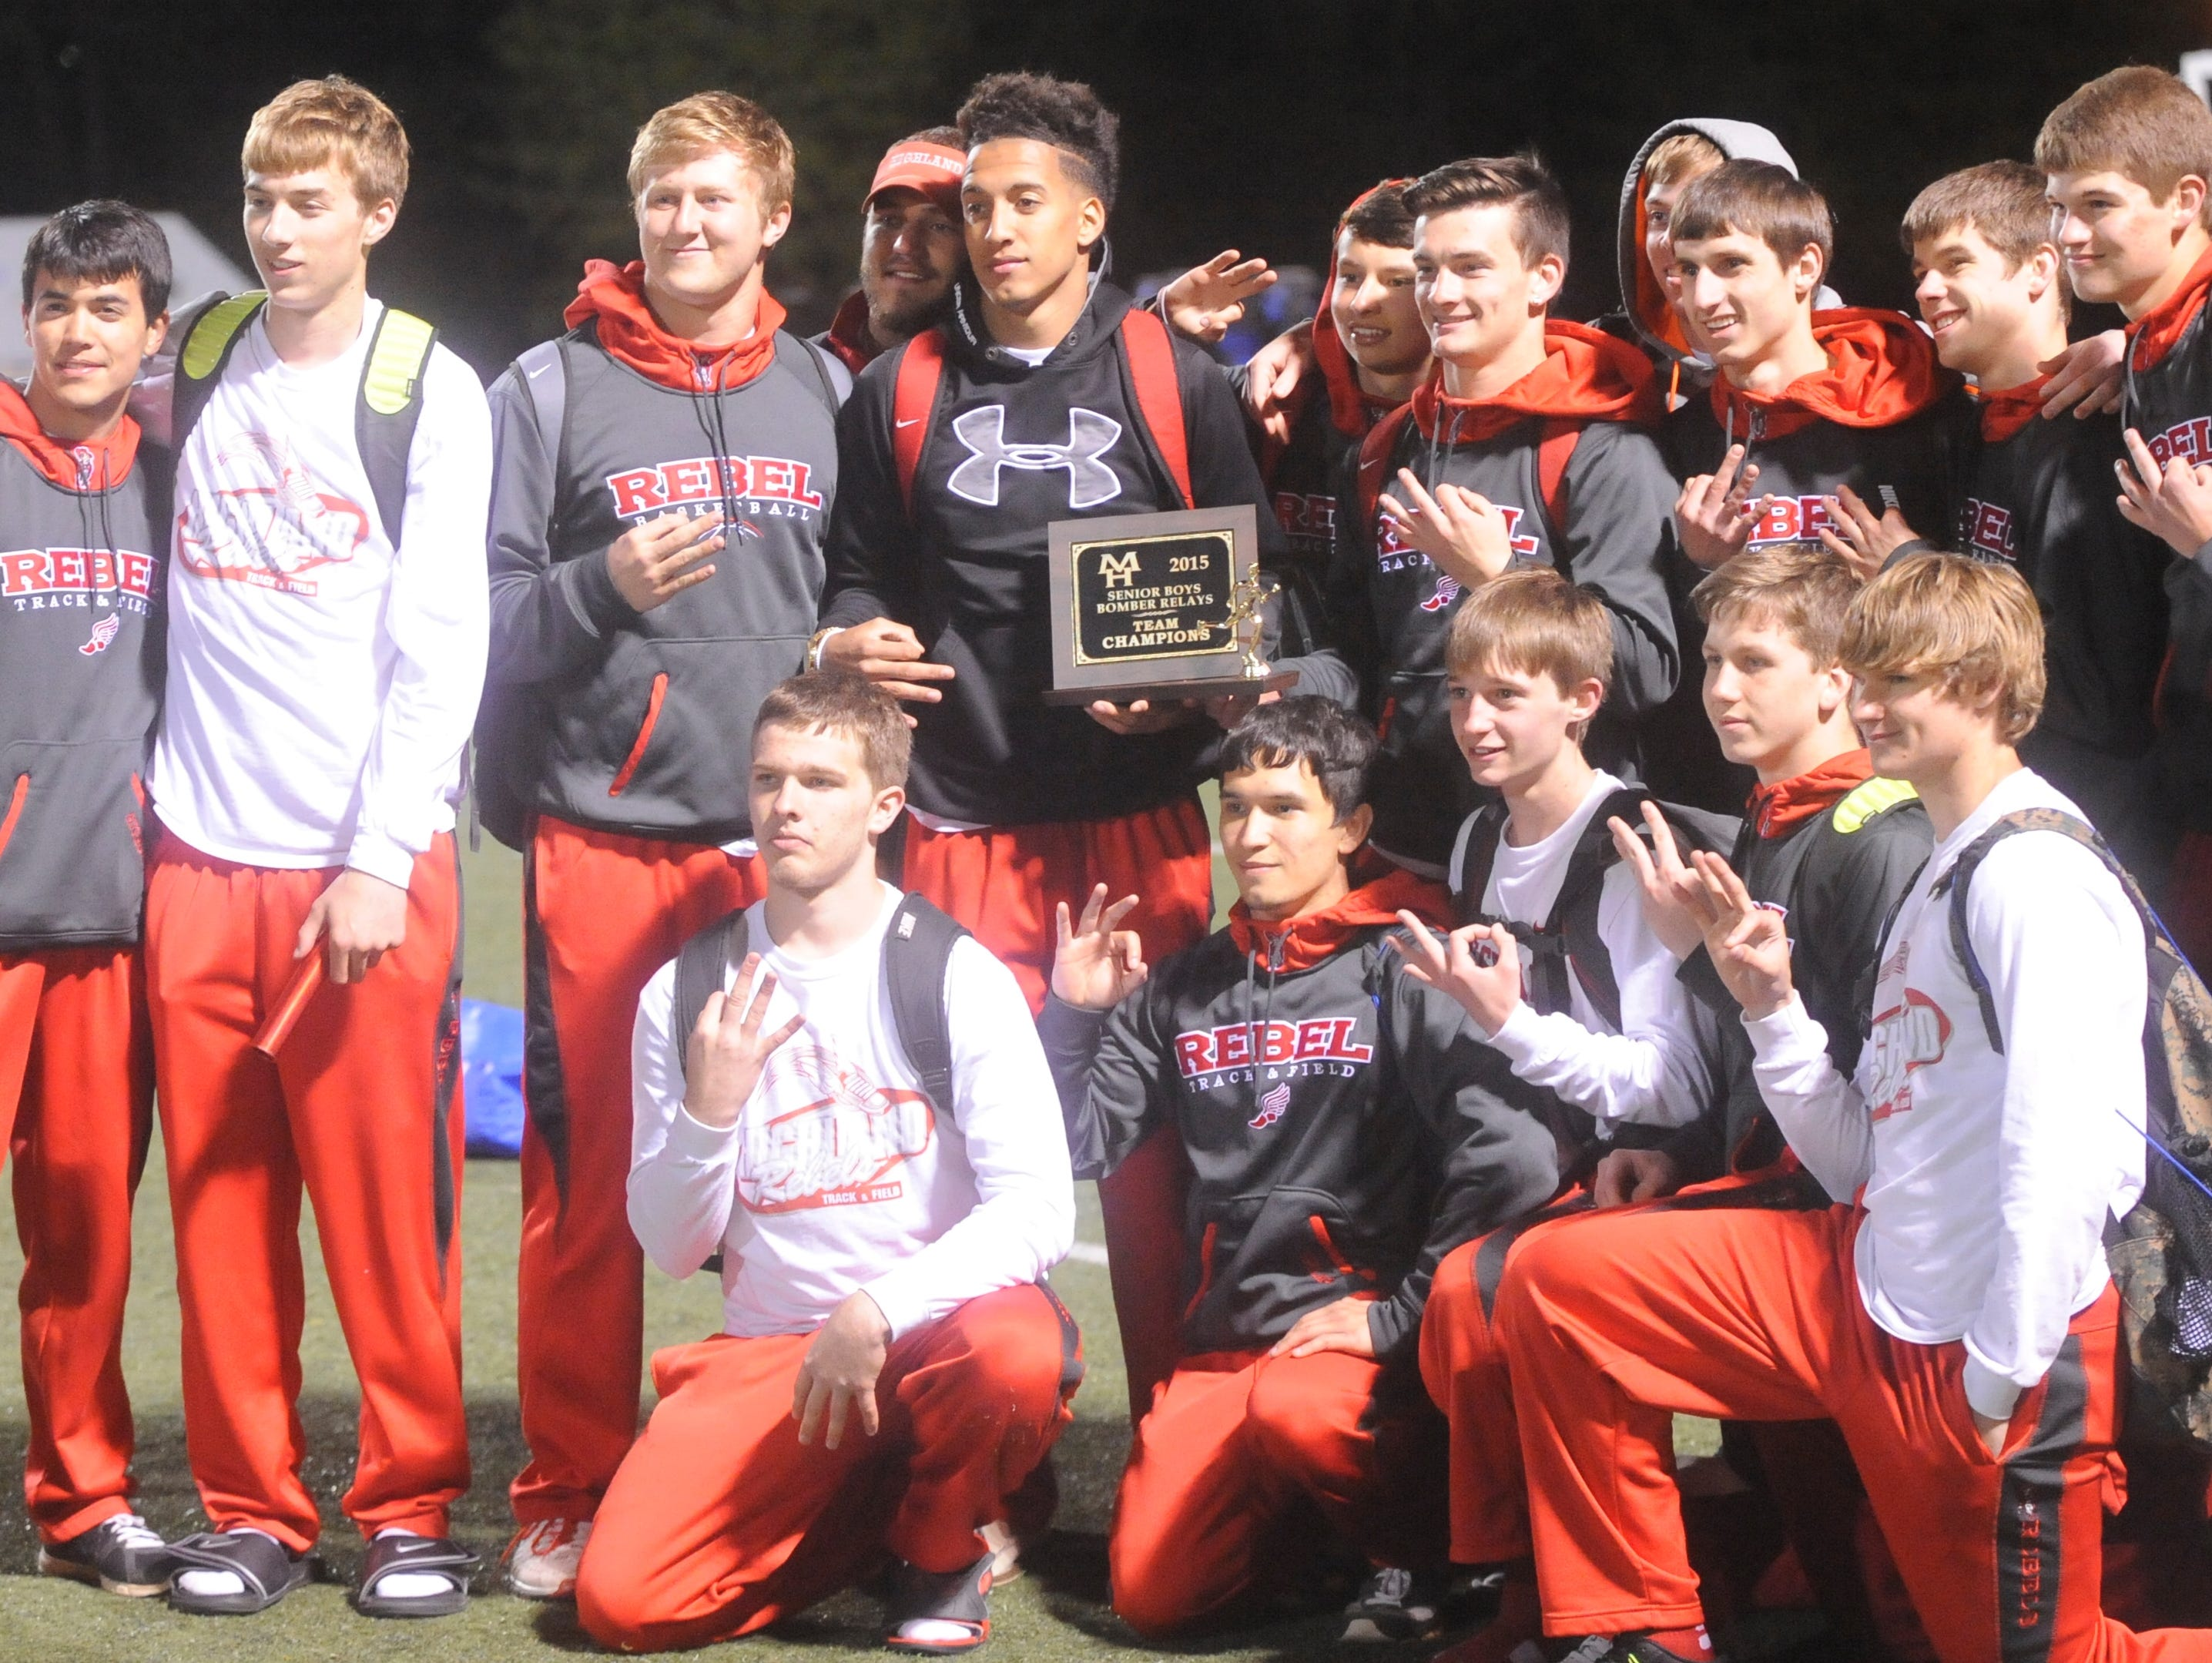 The Highland Rebels pose with the championship trophy of the 2015 Bomber Relays on Monday night at Bomber Stadium. It was the third straight year the Rebels won the Mountain Home meet.